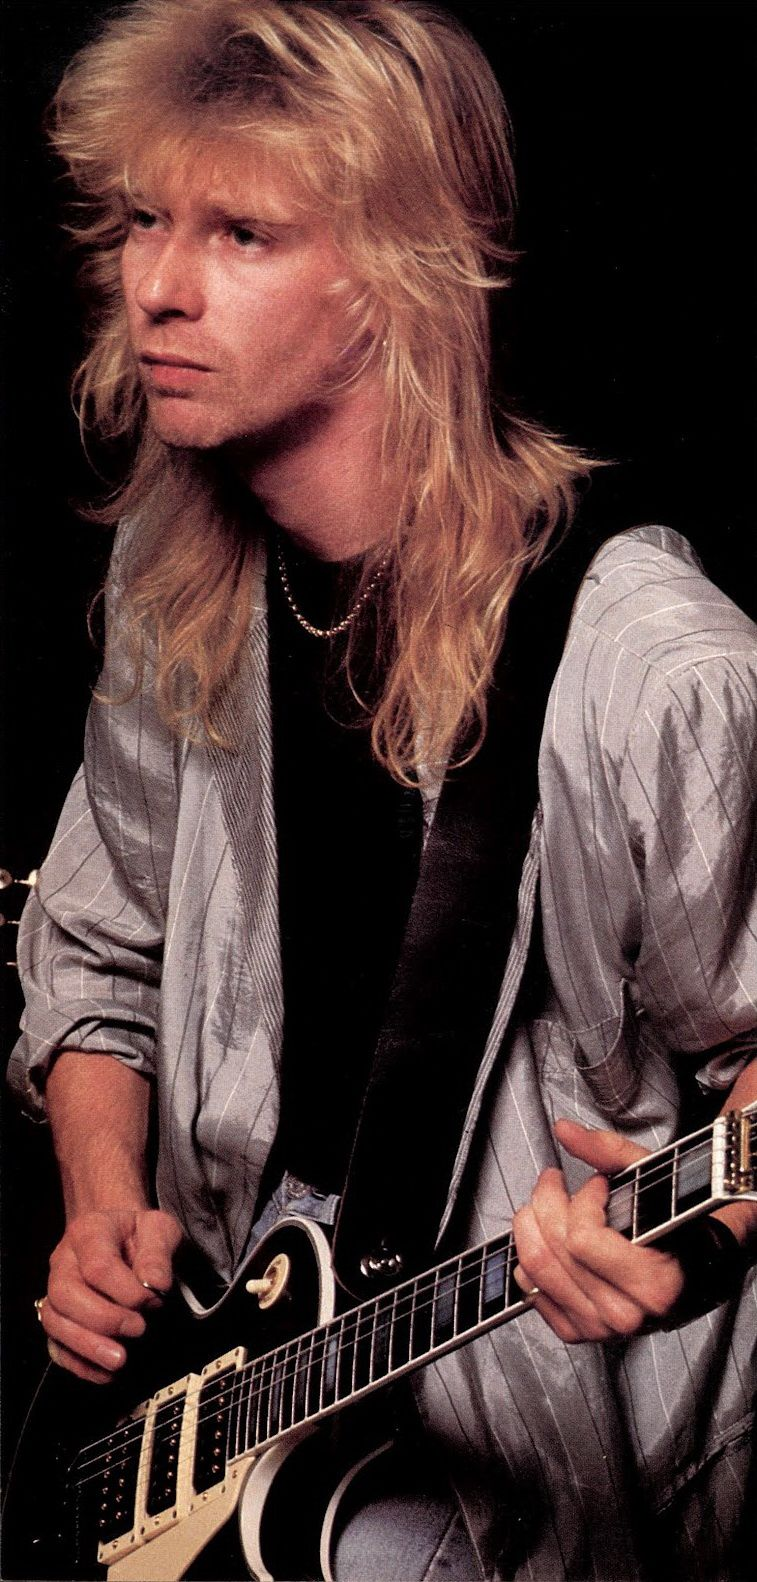 Steve Clark, co-lead guitarist and main songwriter of Def Leppard